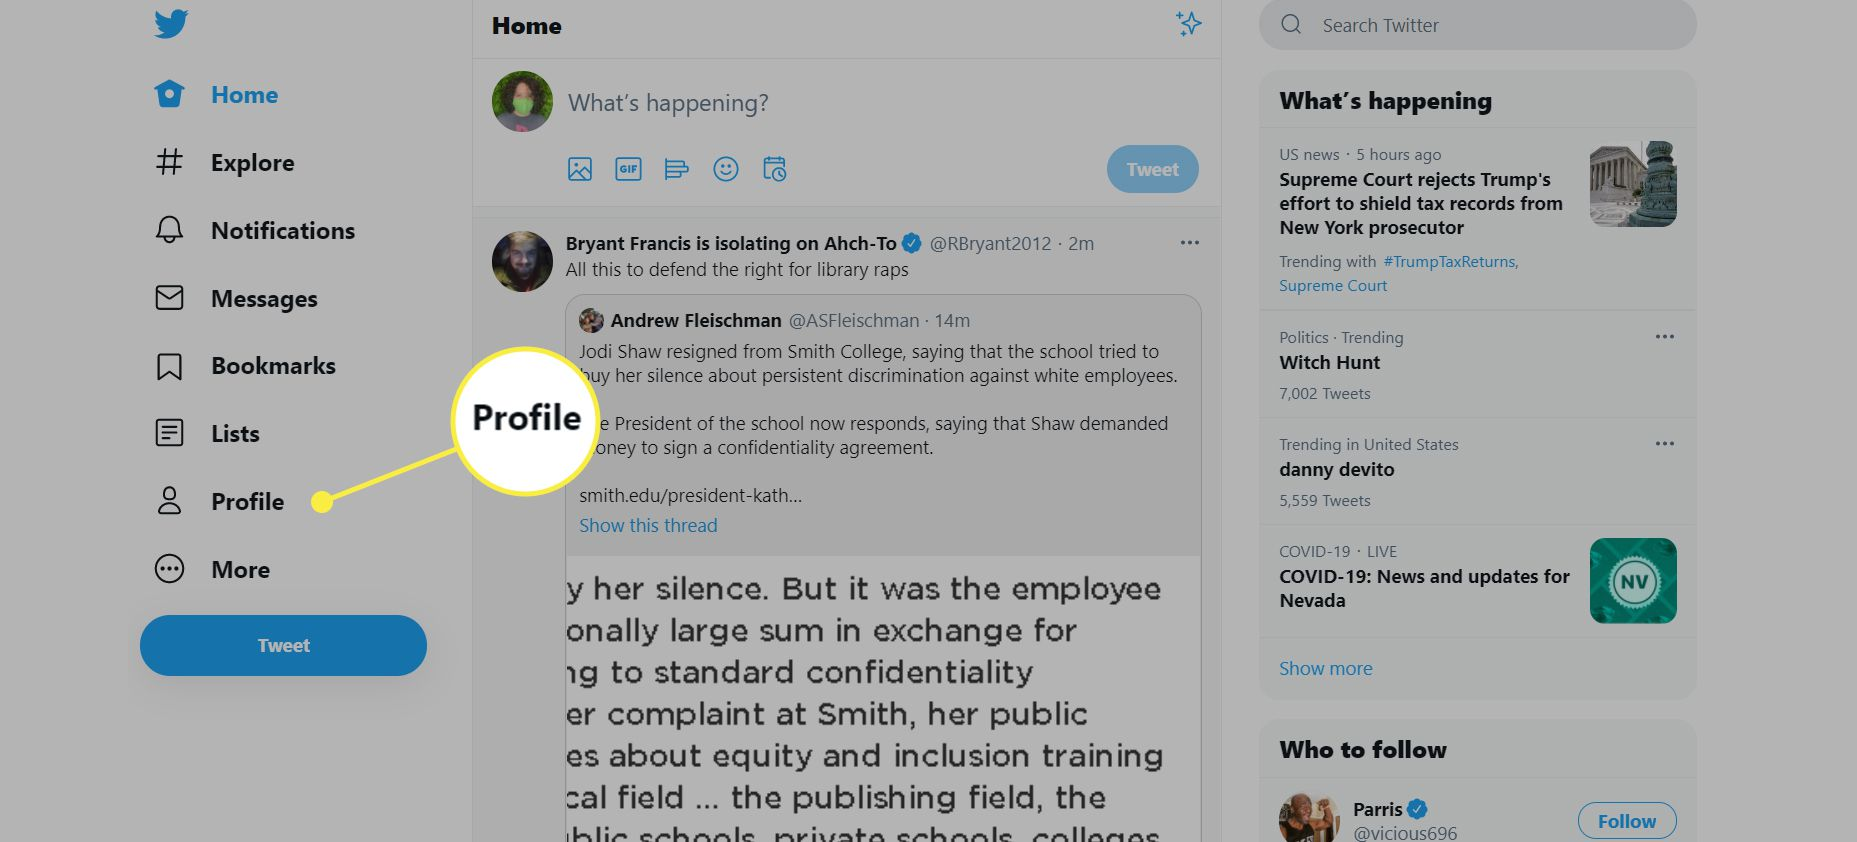 A Twitter home page with the Profile option highlighted